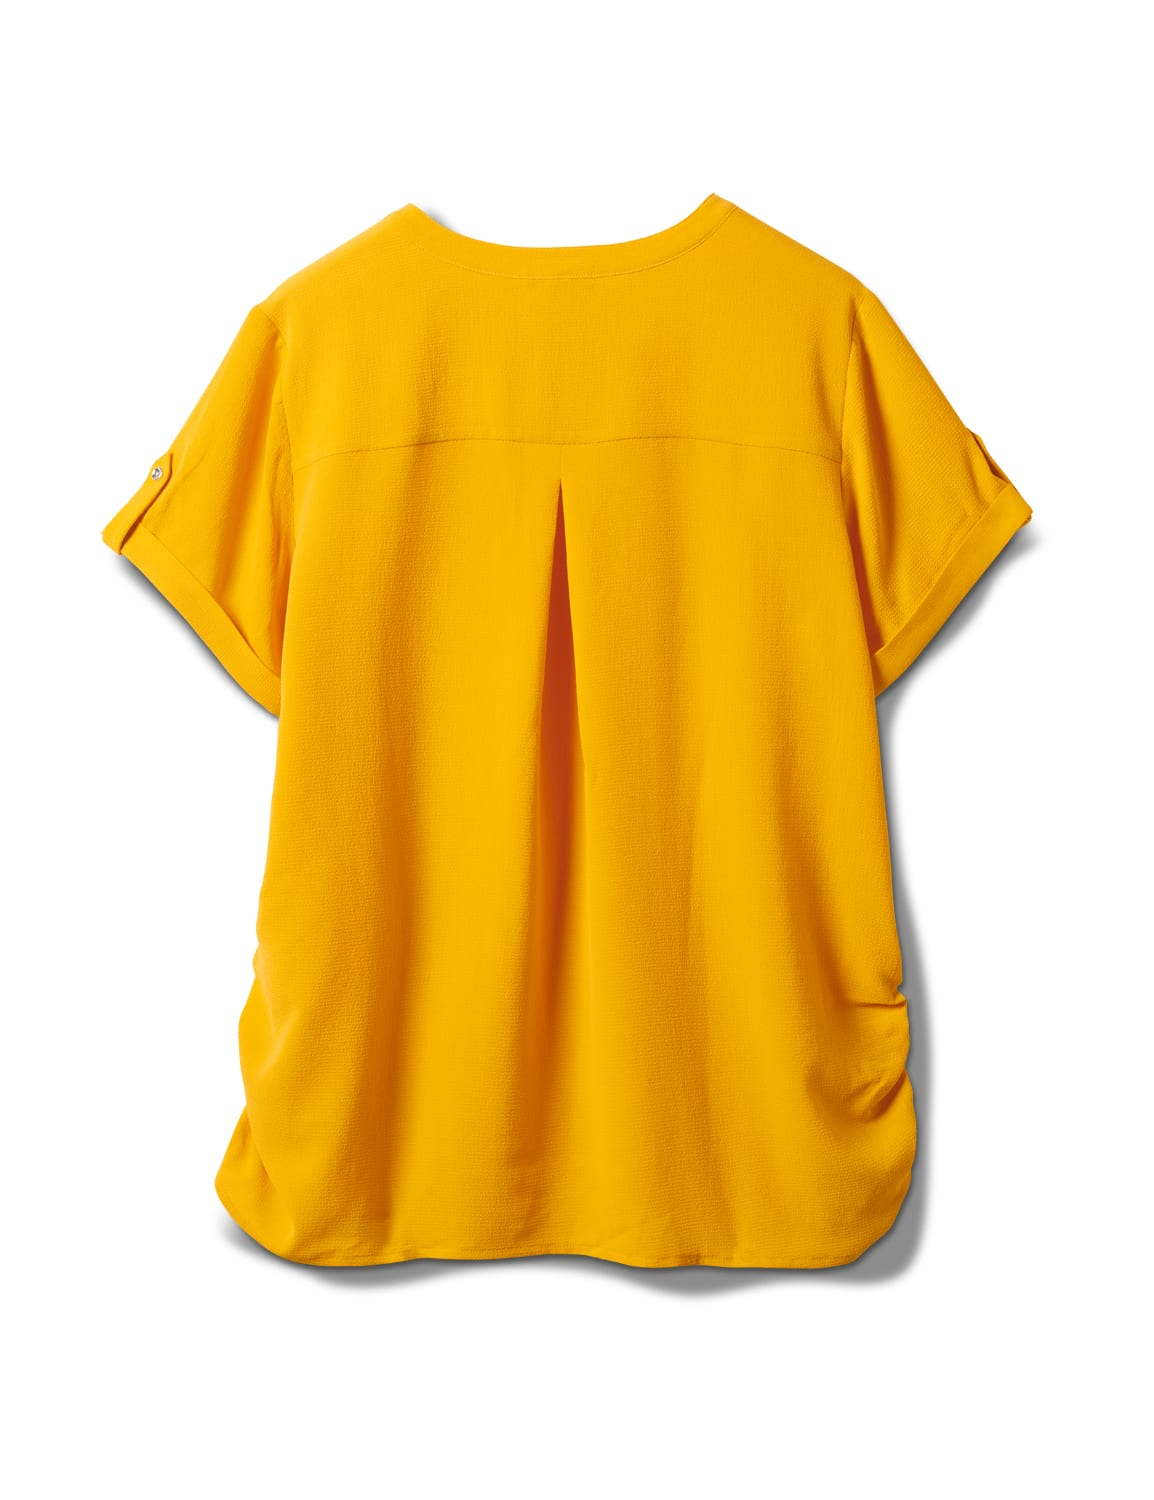 2 Pocket Side Tie  Woven Top - Gold - Back